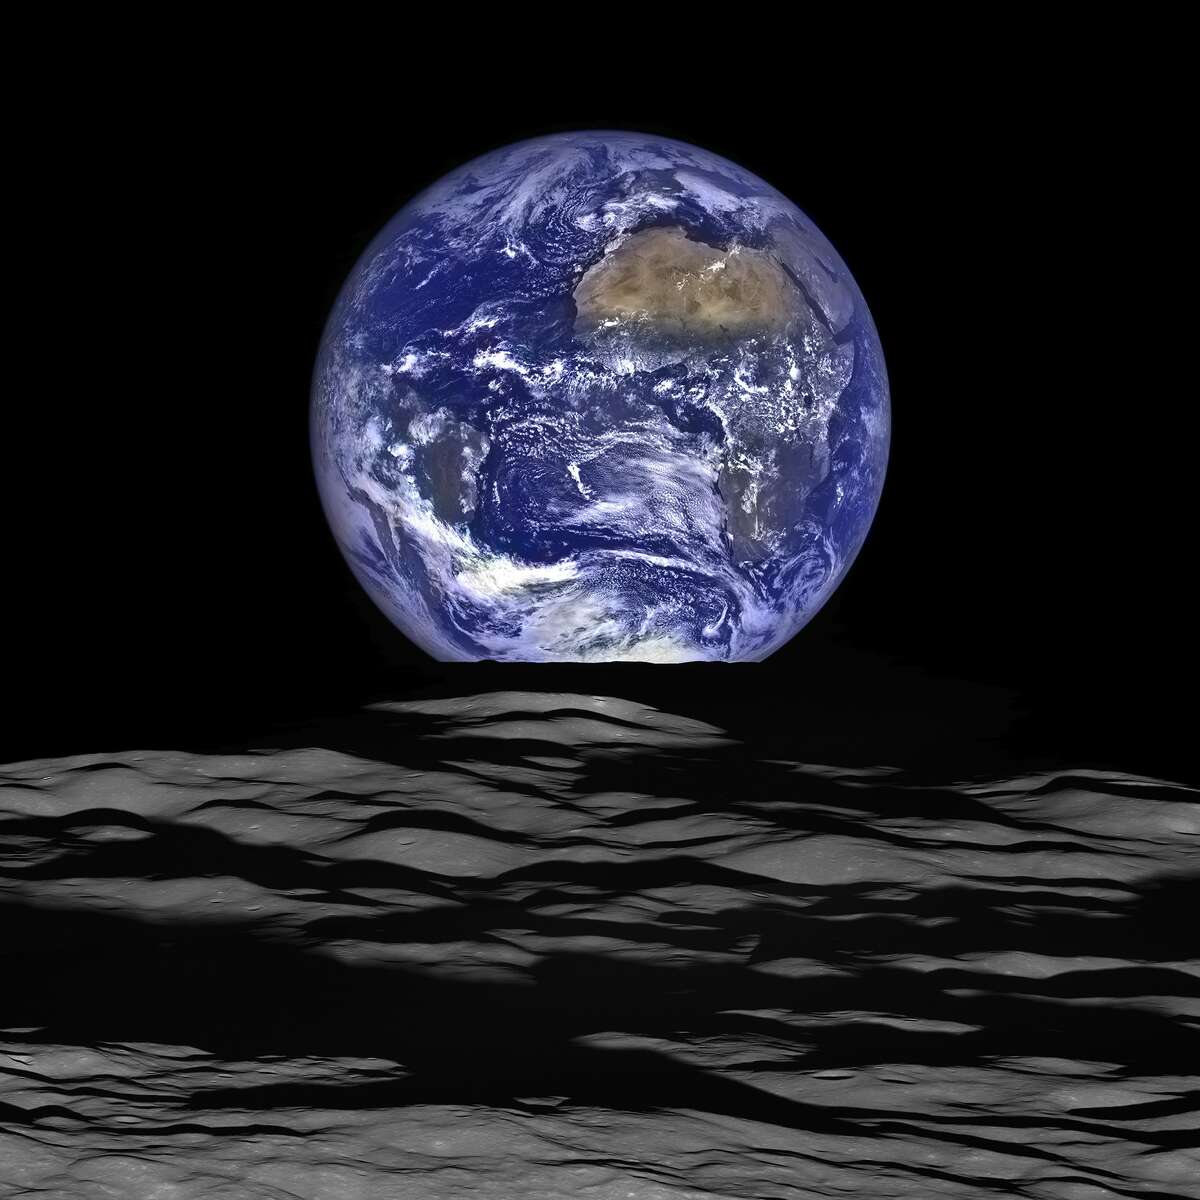 This NASA image released December 18, 2015, shows what NASA's Lunar Reconnaissance Orbiter (LRO) recently captured in a view of Earth from the spacecraft's vantage point in orbit around the moon. In this composite image we see Earth appear to rise over the lunar horizon from the viewpoint of the spacecraft, with the center of the Earth just off the coast of Liberia. The large tan area in the upper right is the Sahara Desert and just beyond is Saudi Arabia. The Atlantic and Pacific coasts of South America are visible to the left. AFP PHOTO / NASA/HANDOUT/Getty Images